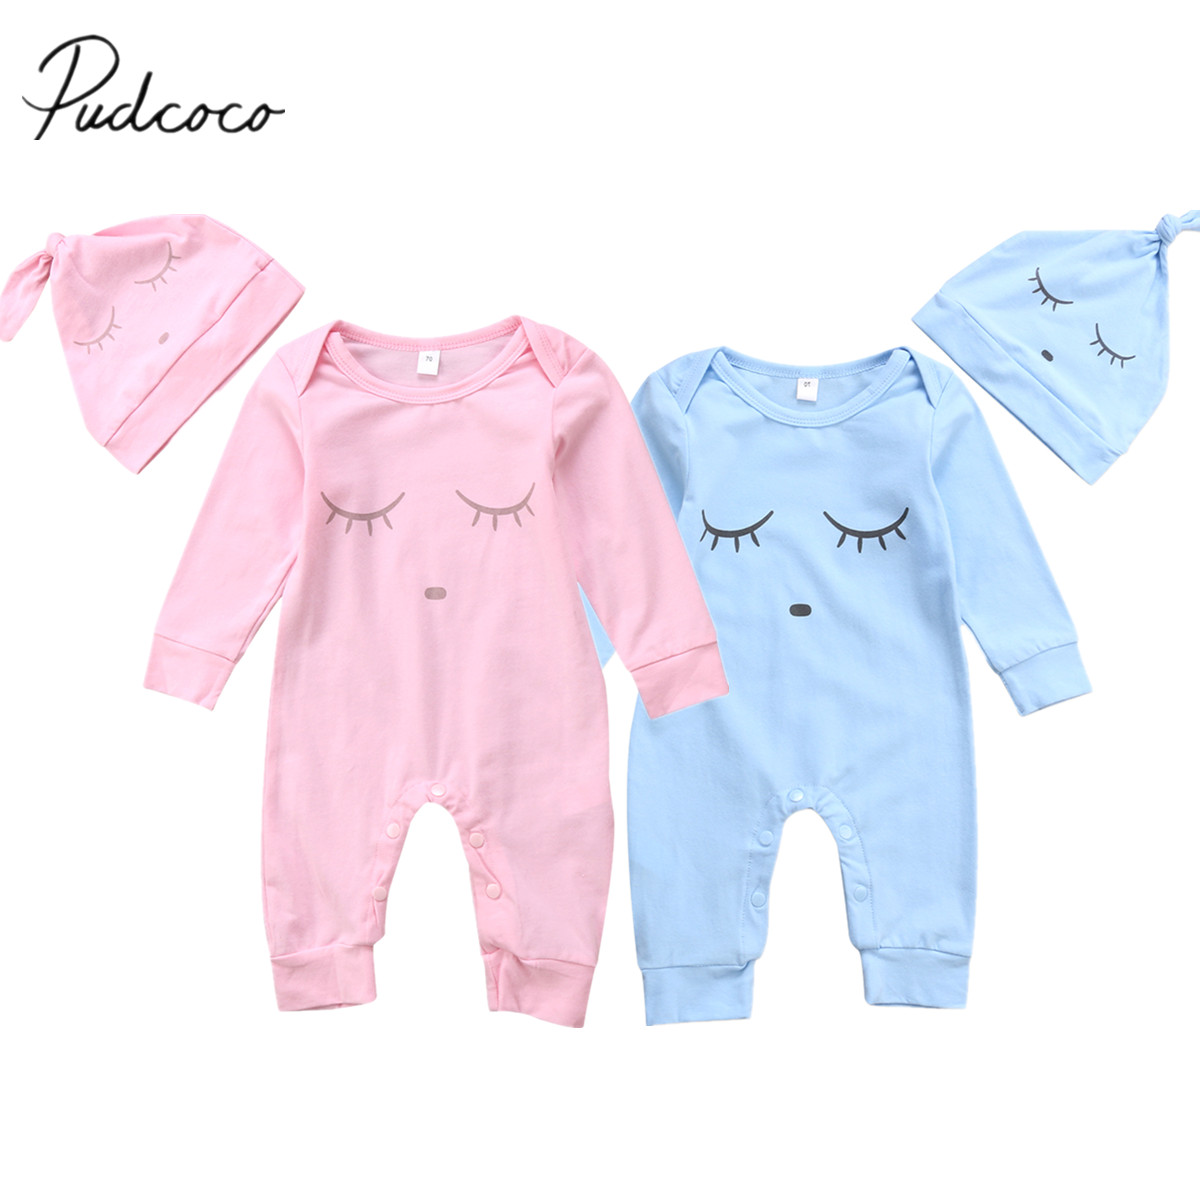 2017 Brand New Infant Toddler Baby Boy Girl Sleep Eyes Romper Jumpsuit Long Sleeve Playsuit Hat 2pcs Clothes Outfit Cute Set infant baby boy girl 2pcs clothes set kids short sleeve you serious clark letters romper tops car print pants 2pcs outfit set